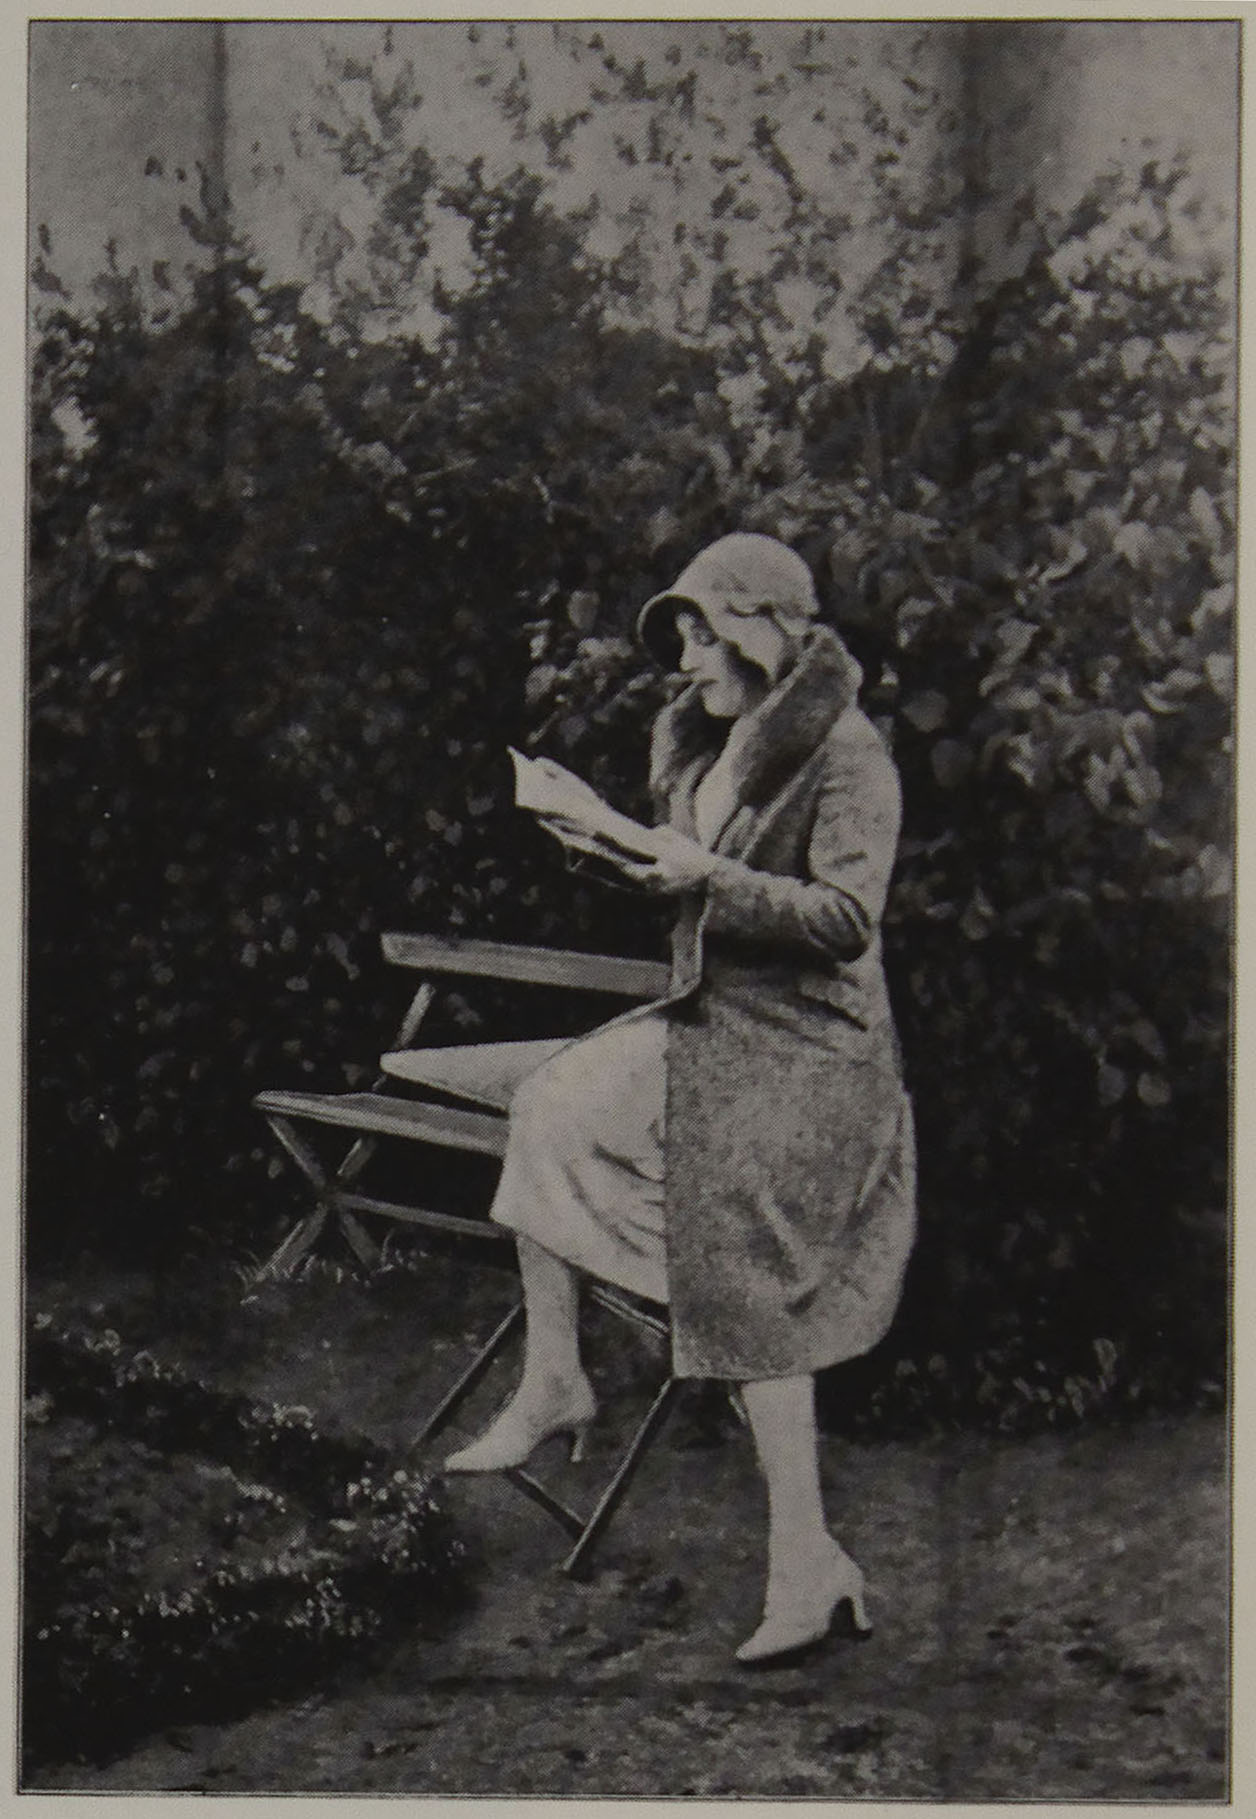 Lili Elbe is outside, sitting                      on a chair or bench and reading a book.